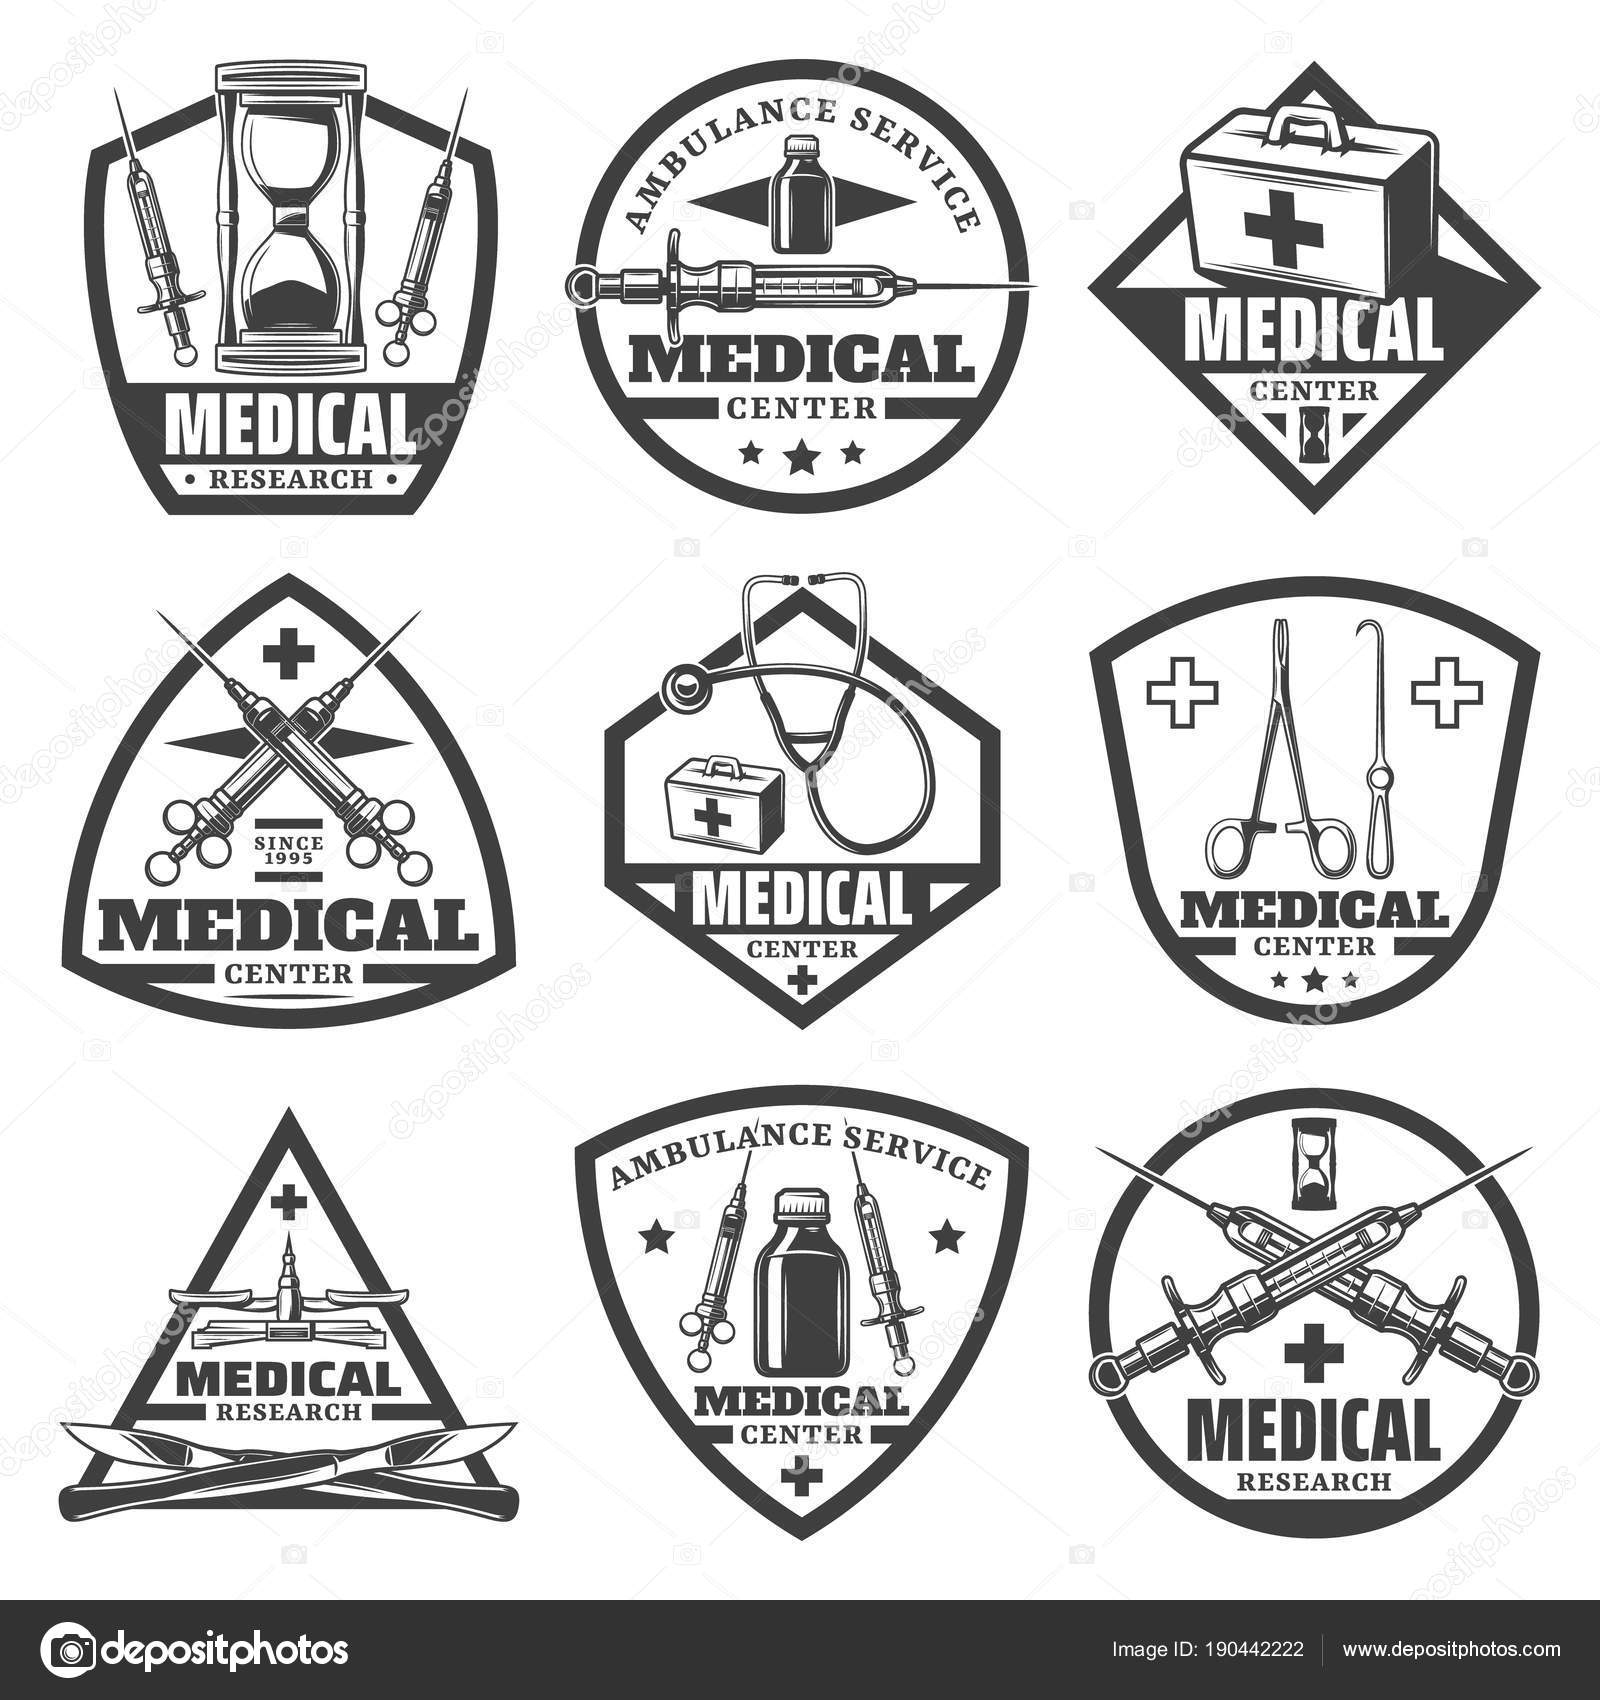 Vintage Monochrome Medical Labels Set With Hourglass Doctor Bag Syringe Stethoscope Bottle Scales Surgical Tools Isolated Vector Illustration By